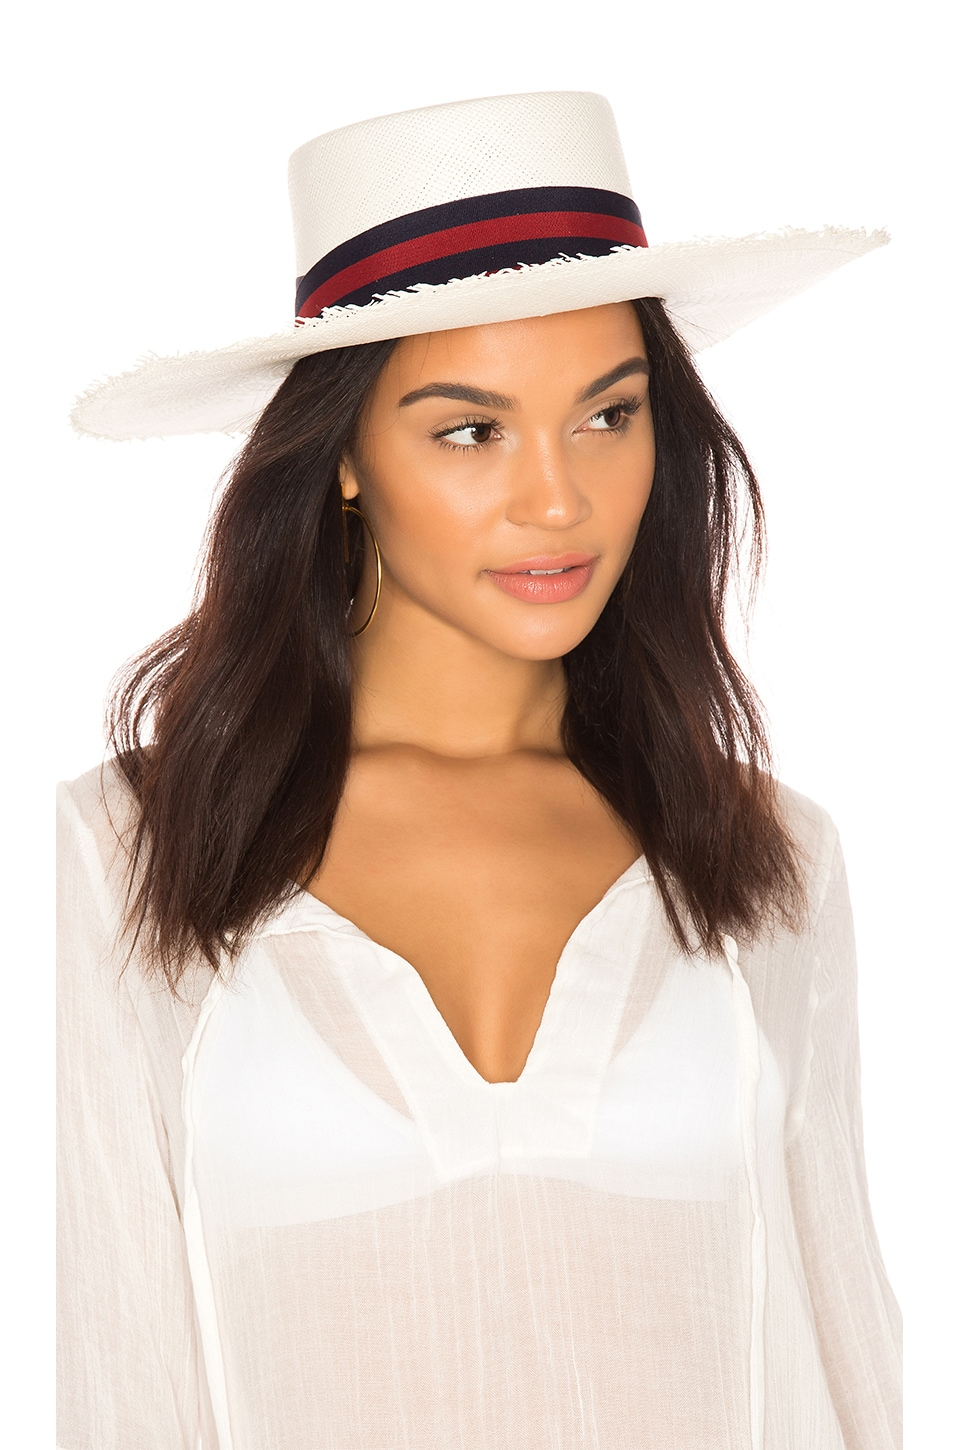 SENSI STUDIO Long Brim Boater Hat in White, Navy & Red